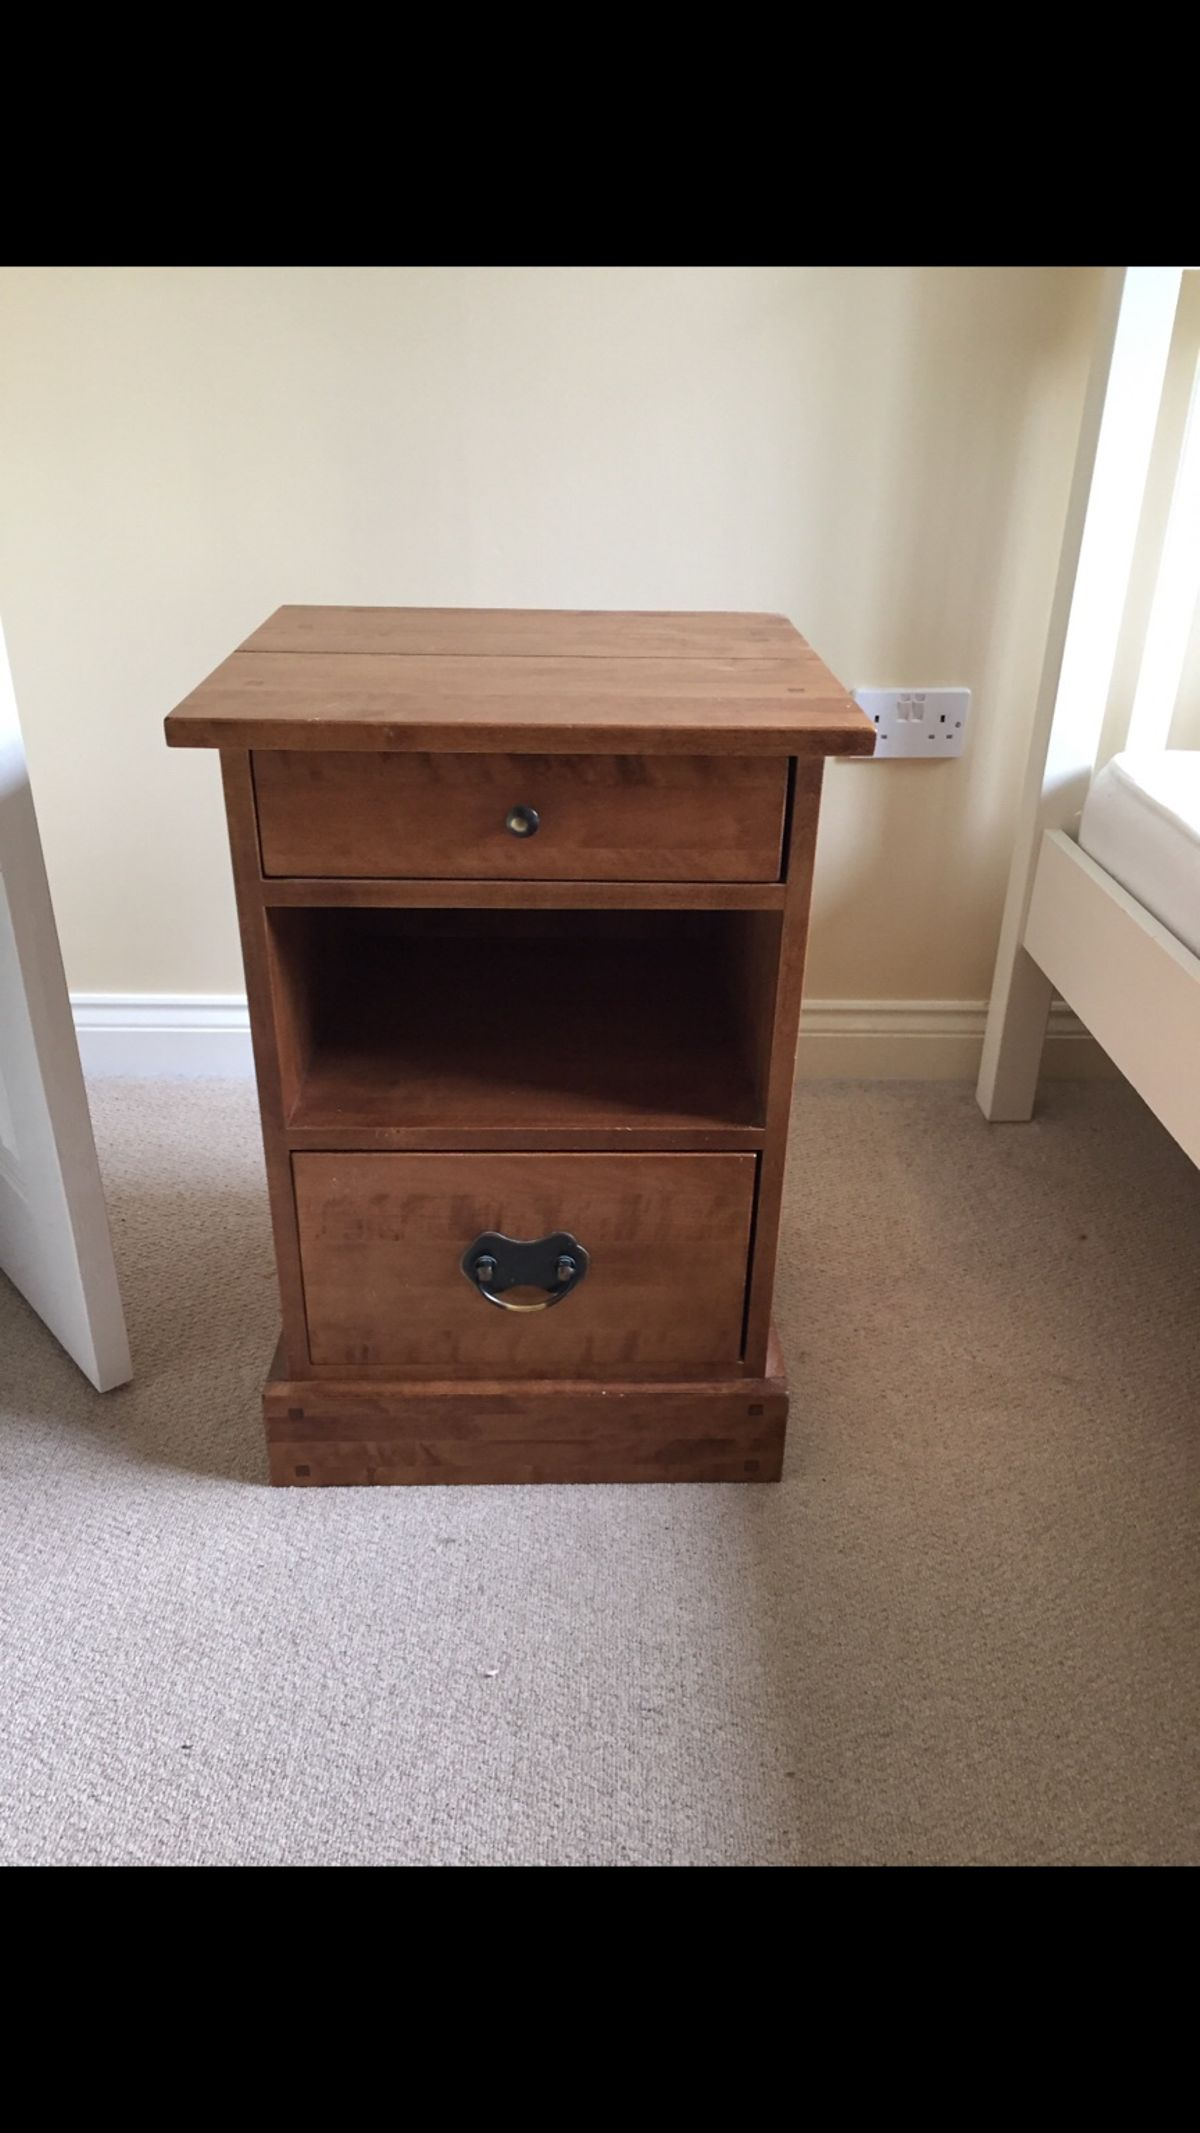 laura ashley side table kettering for shpock end tables description wooden house oak and sofas sofa middle gray wood nightstand diy coffee base hampton bay patio cushions round